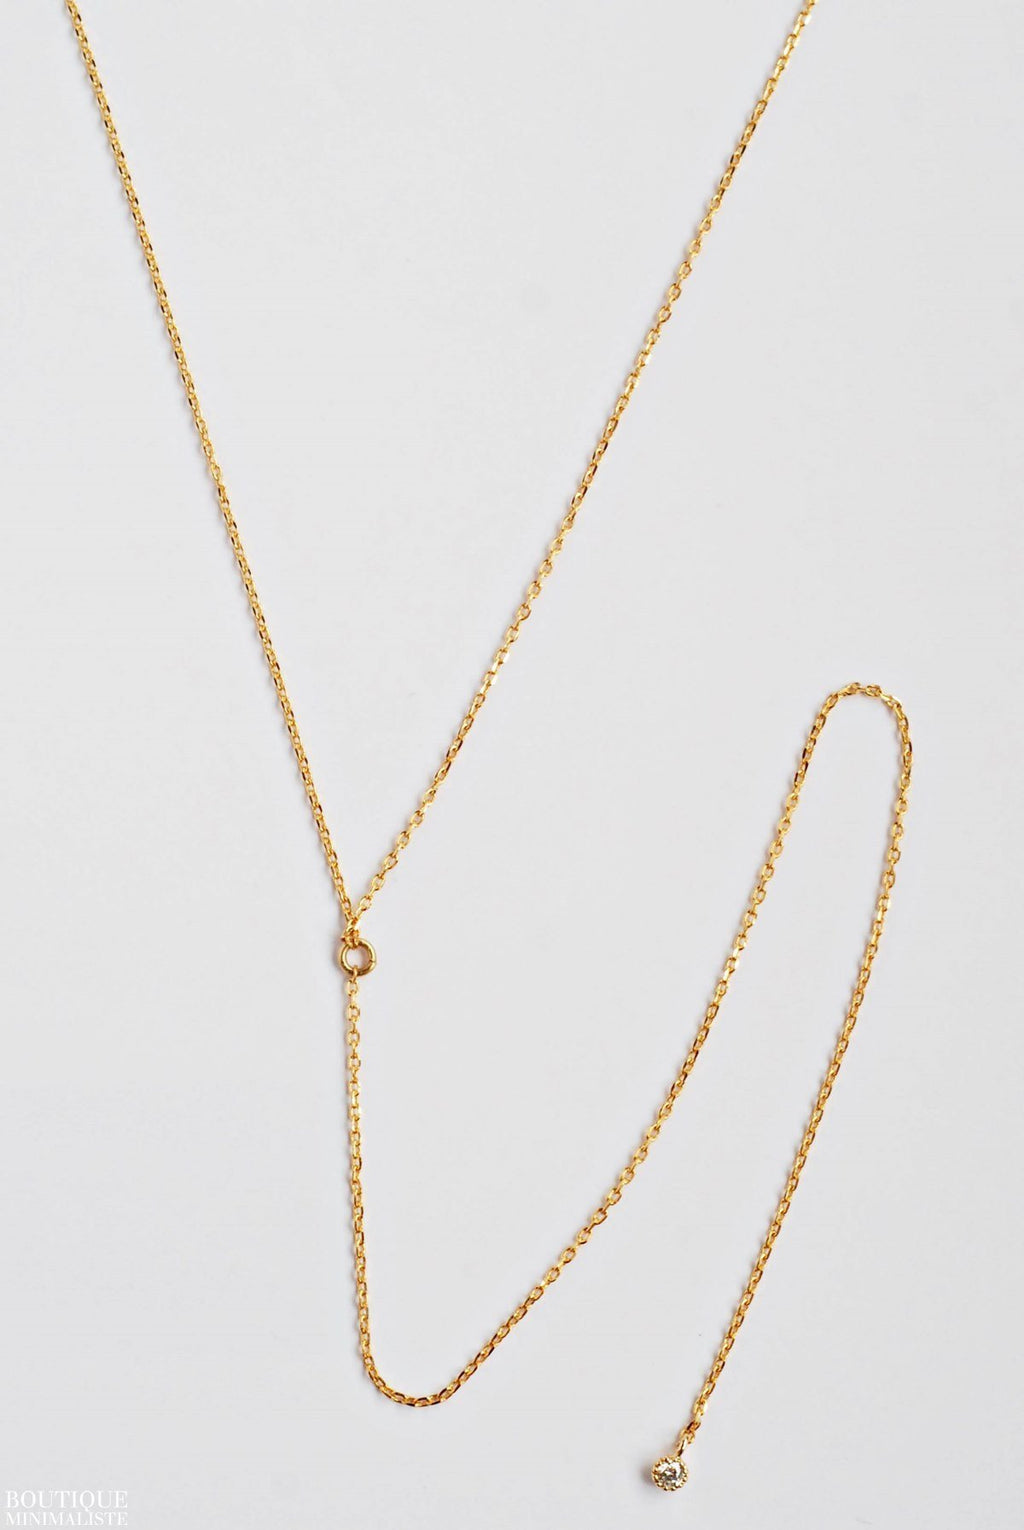 Basic Lariat Necklace - Boutique Minimaliste